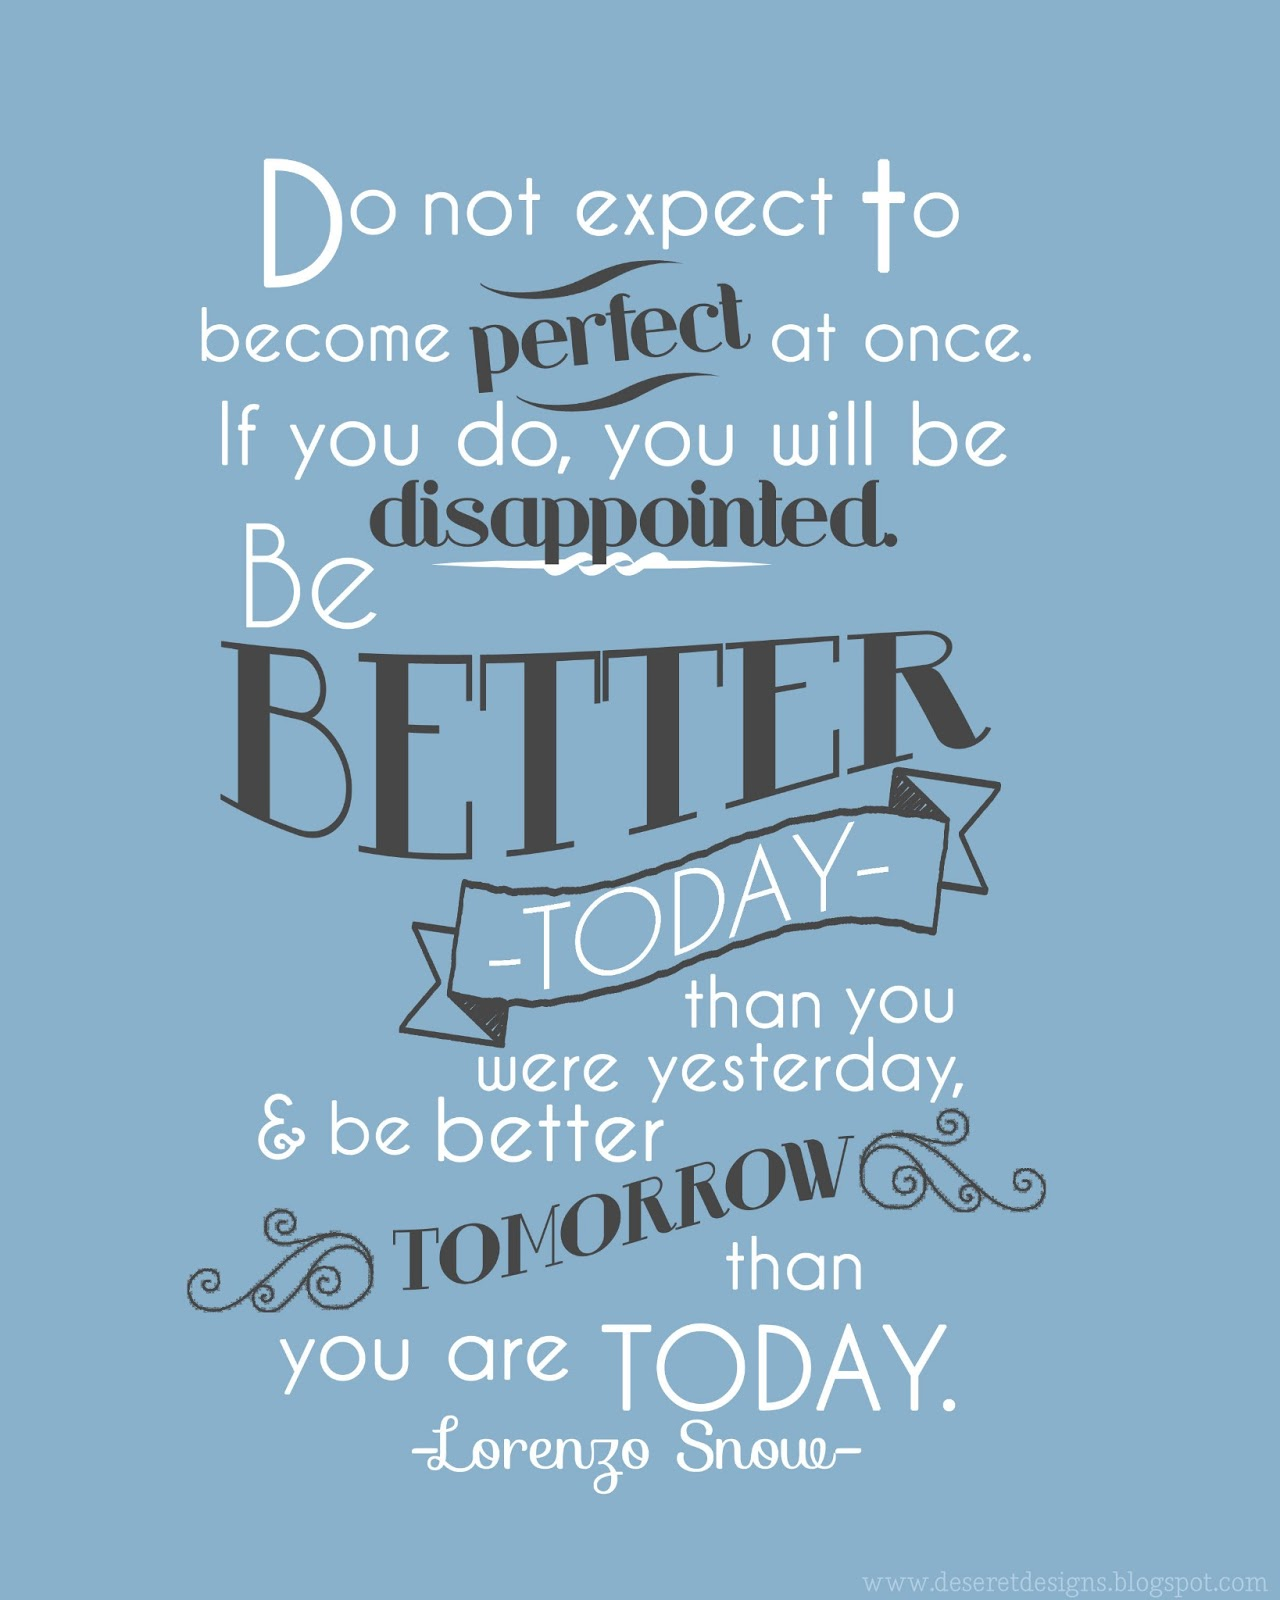 Exceptionnel Be Better Today Than You Were Yesterday.